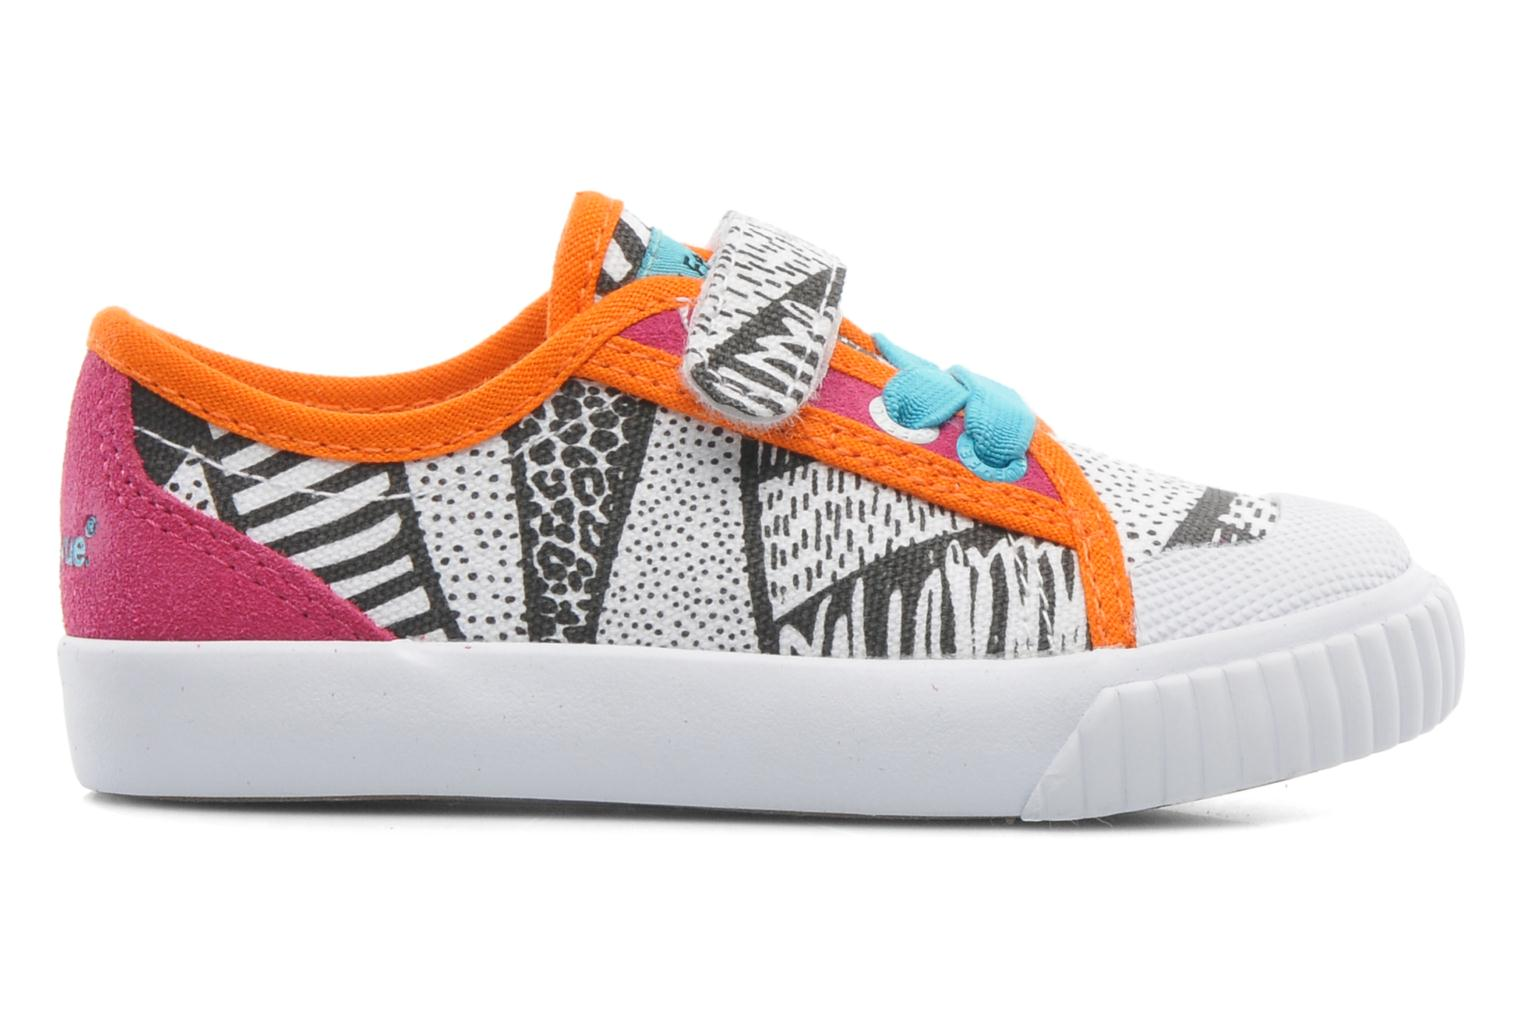 FE LO II CANVAS EZ TRIBAL TRIBAL PRINT PINK / WHITE / BLACK/ ORAN